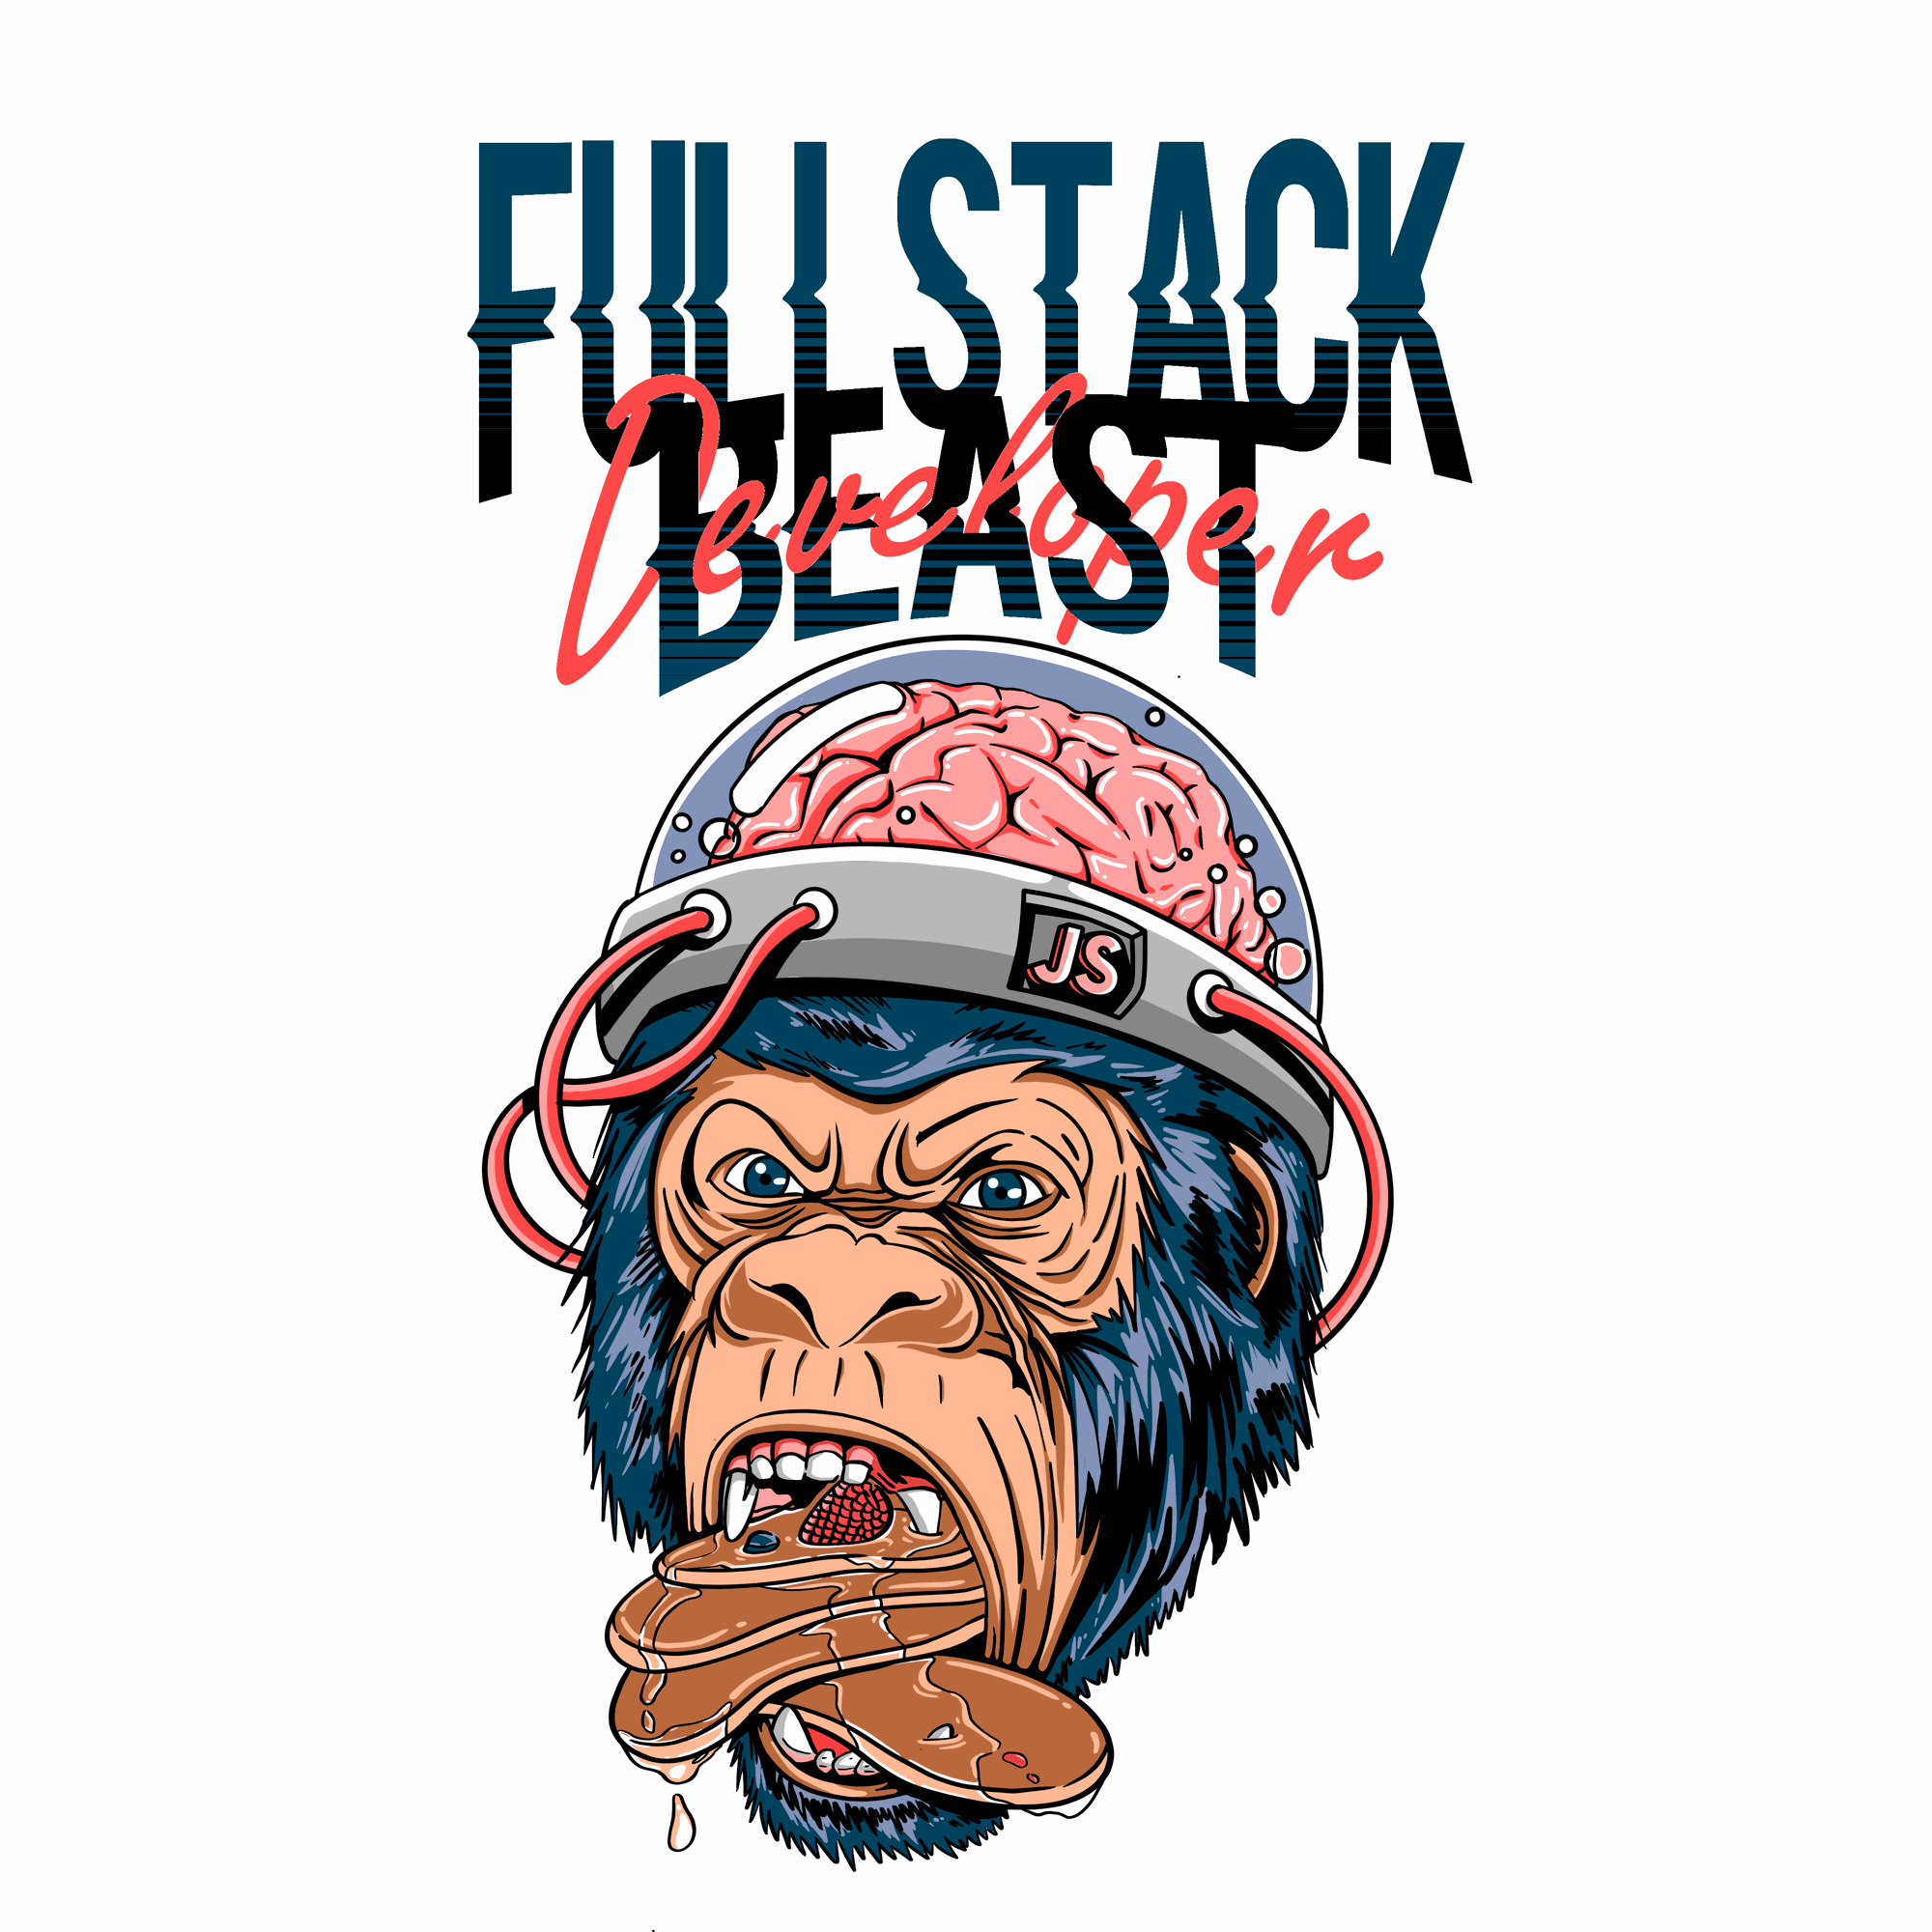 Design a t-shirt for all powerful Fullstack developers out there in the jungle!